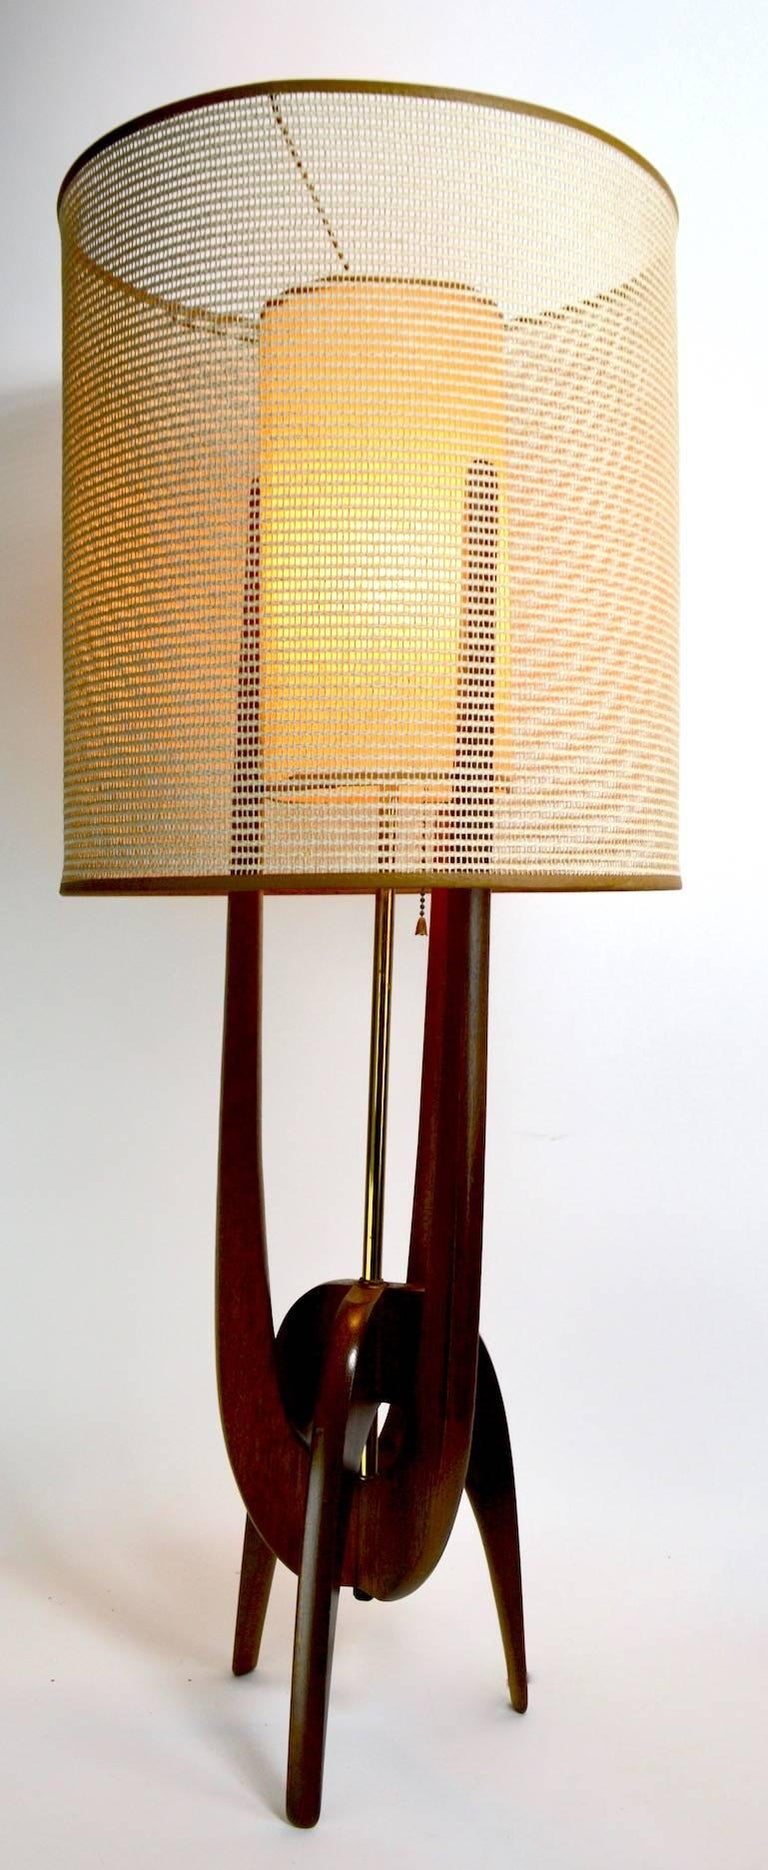 Classic midcentury lamp by Pearsall. This example is in very good, original, clean and working condition. It features the original weave outer shade and textured inner cylinder shade, on sculpted wood bass. Measure: Shade alone 14.75 diameter x